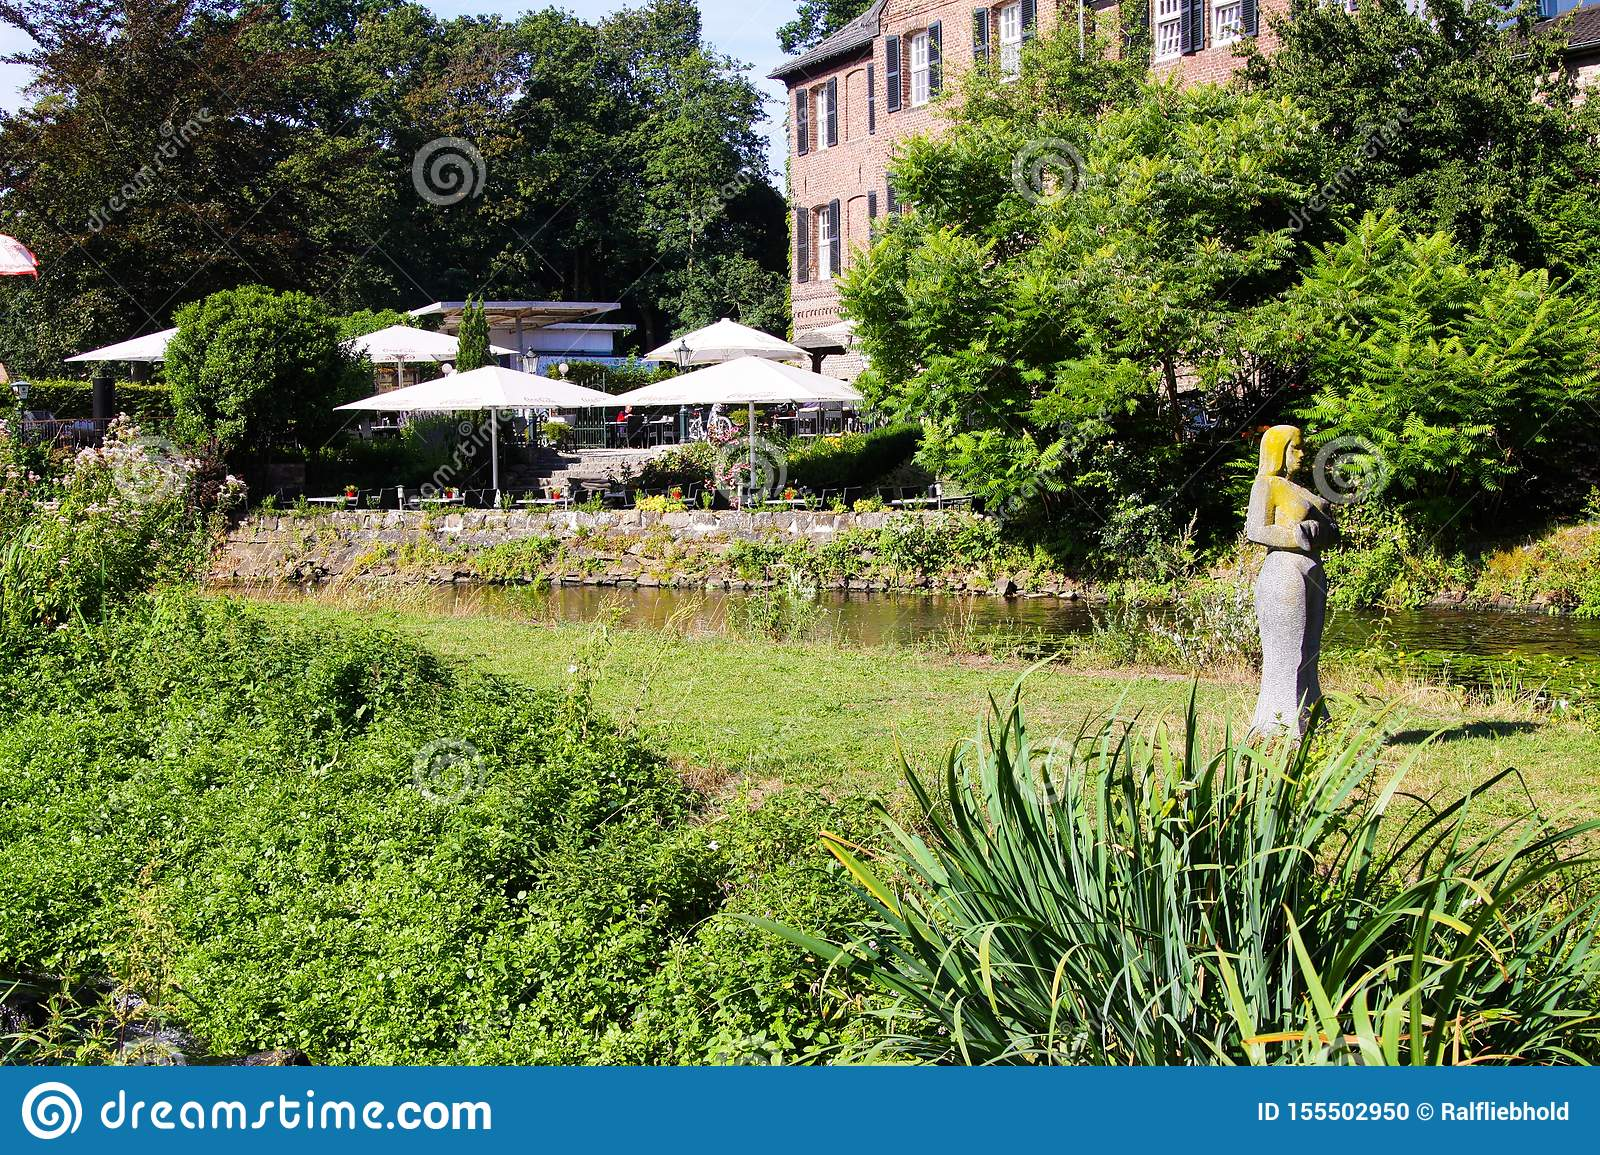 View Over Creek And Green Park On Outdoor Terrace Of Restaurant With Umbrellas And Old Bred Editorial Image Image Of Brafrac14 Tree 155502950